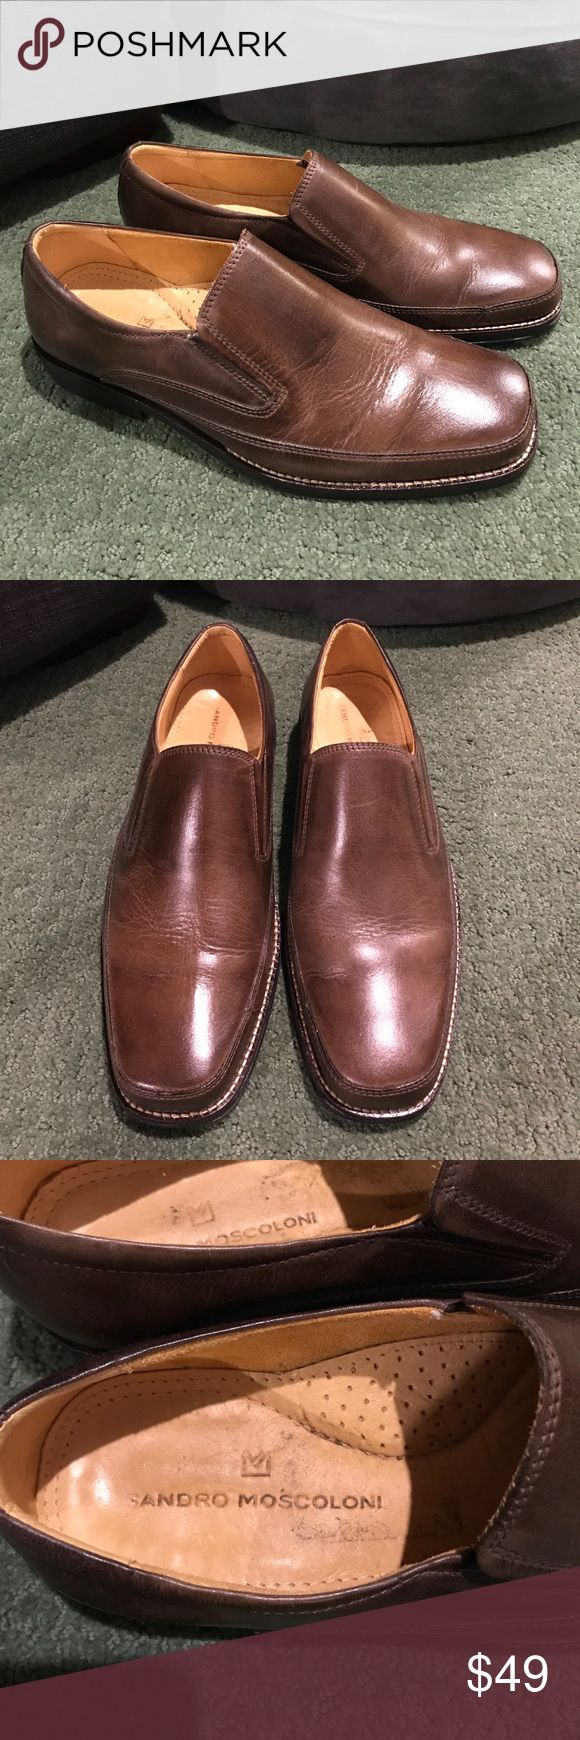 Sandro Moscoloni Leather Men's Lindsey Loafer Sandro Moscoloni Men's Leather shoes made in Brazil. Quality brown leather bought at Nordstrom. Size 10. Sandro Moscoloni Shoes Loafers & Slip-Ons